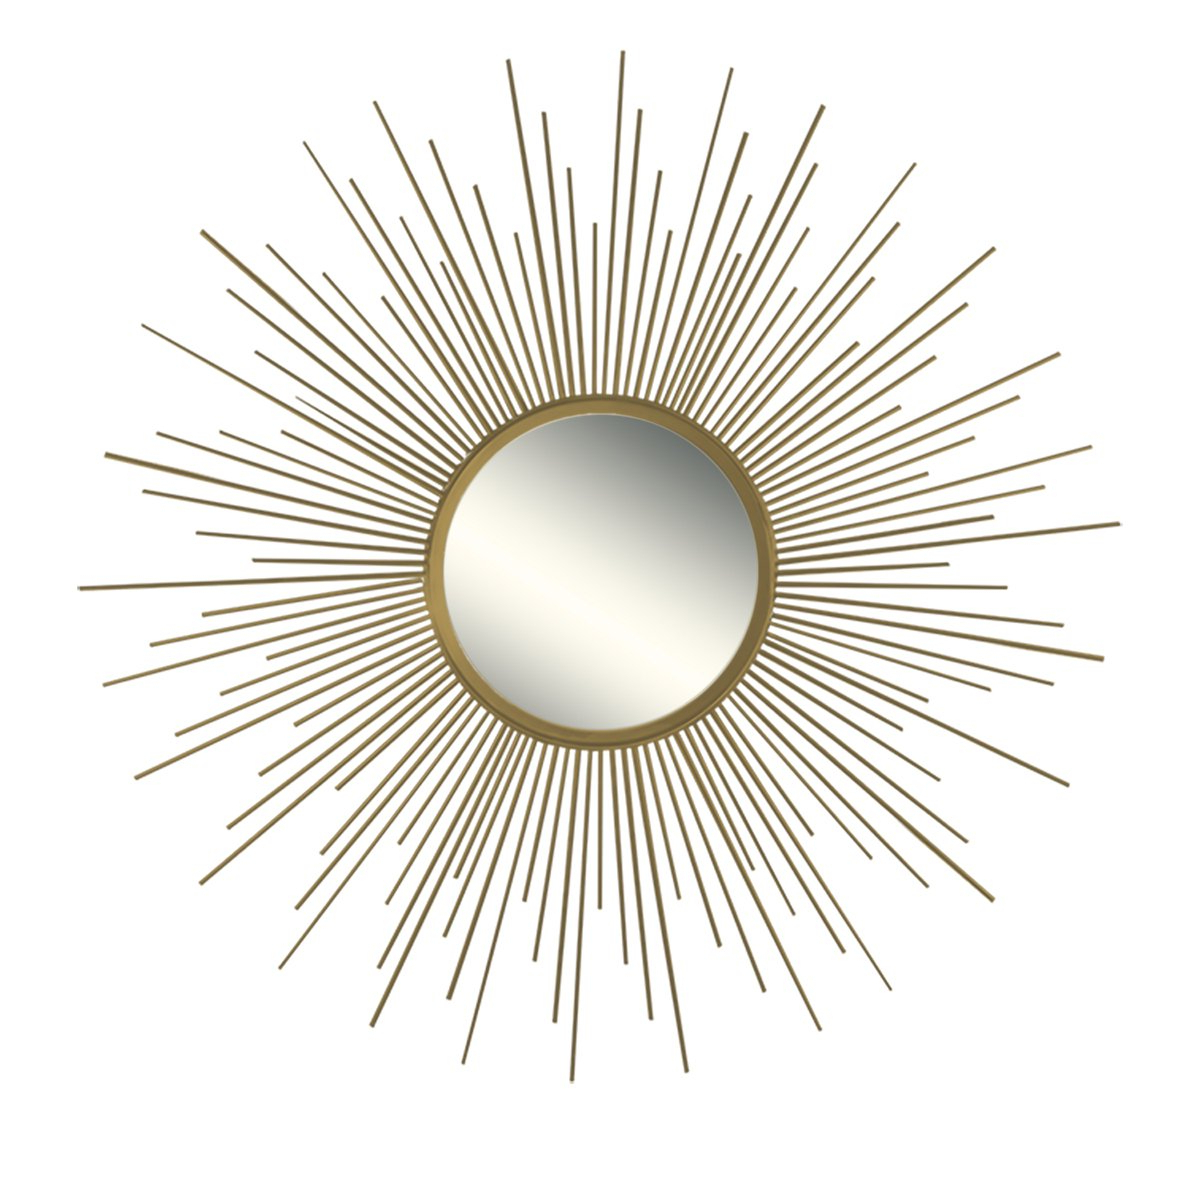 "36"" Decorative Wall Hanging Mirror In Sunburst Shape, Brushed Gold Sunburst Round Wall Mirror, Mid Century Modern Style Mirror, Brushed Gold Finish Pertaining To Latest Sunburst Wall Mirrors (View 14 of 20)"